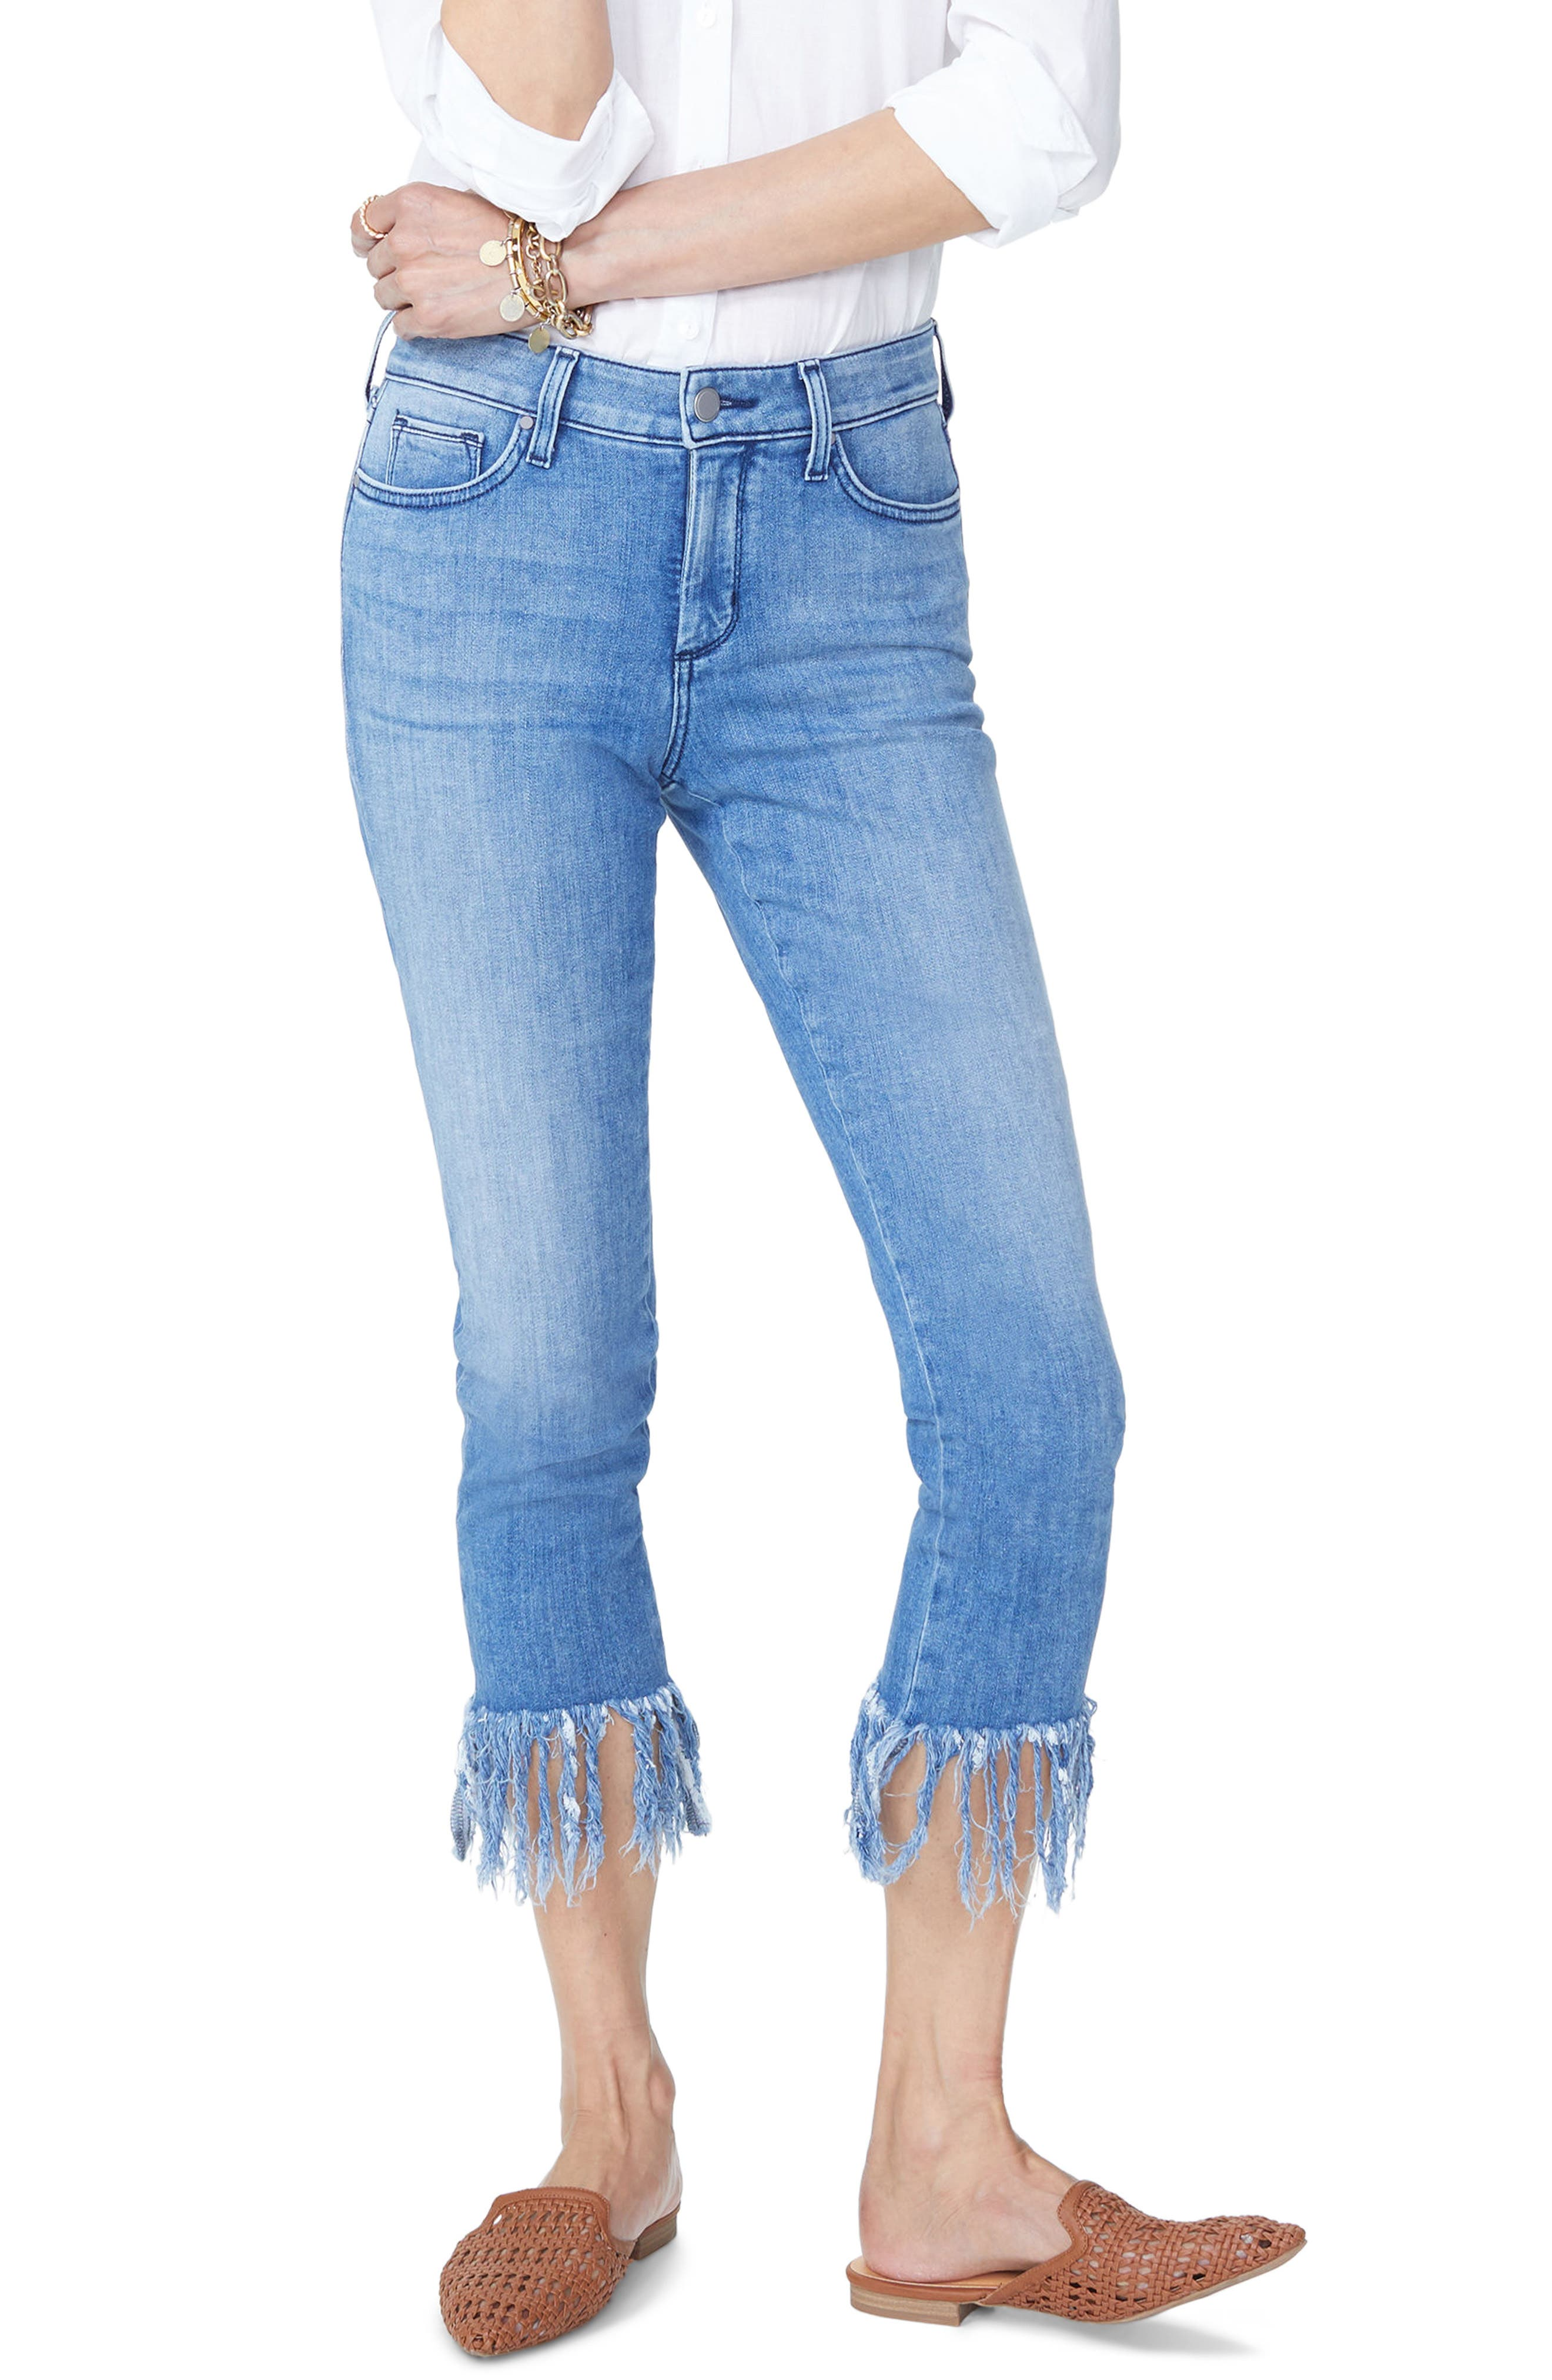 Ami Long Fray Skinny Stretch Ankle Jeans,                             Main thumbnail 1, color,                             Capitola